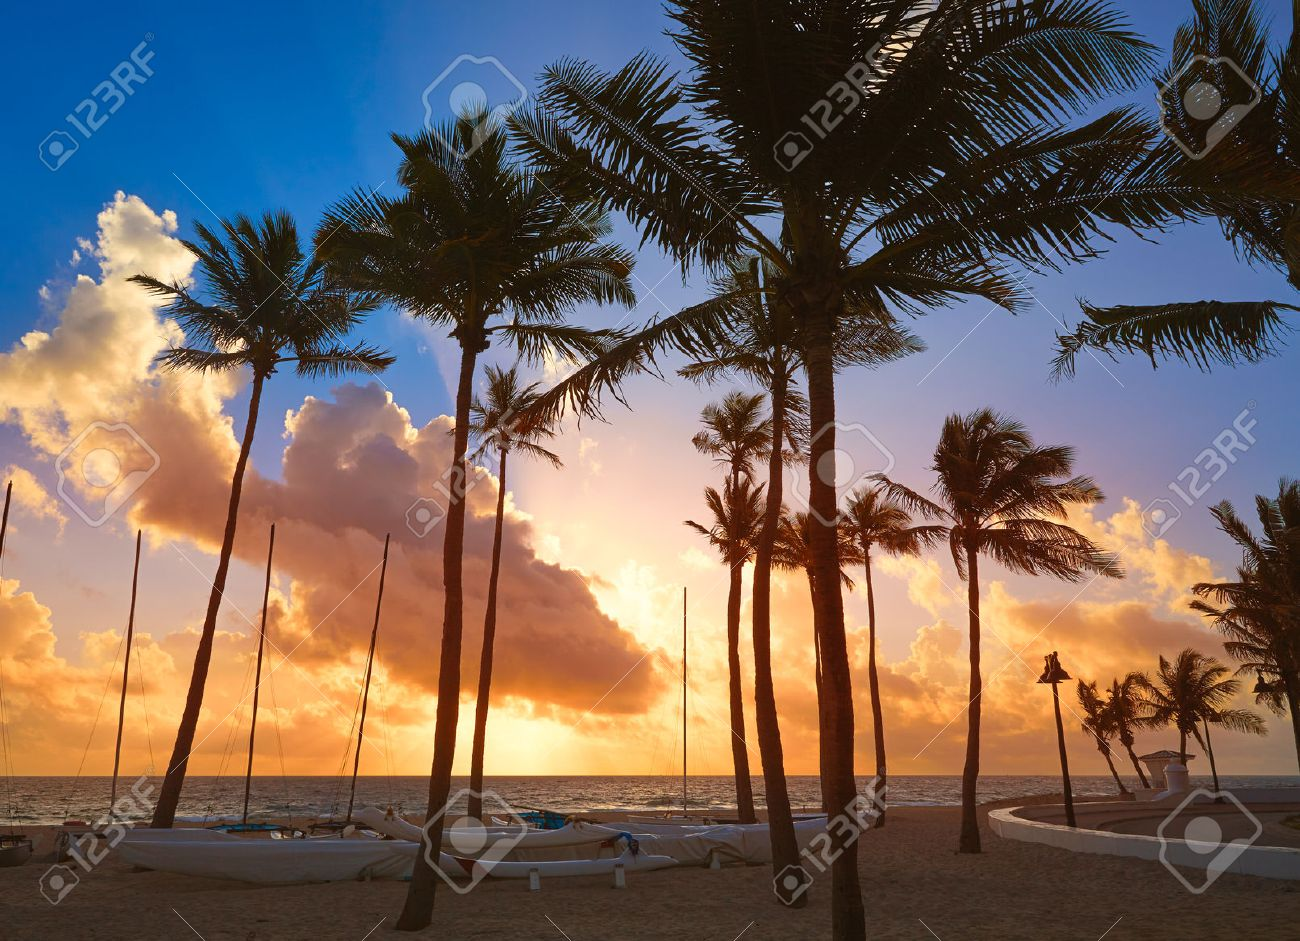 Fort Lauderdale beach morning sunrise in Florida USA palm trees - 58893235